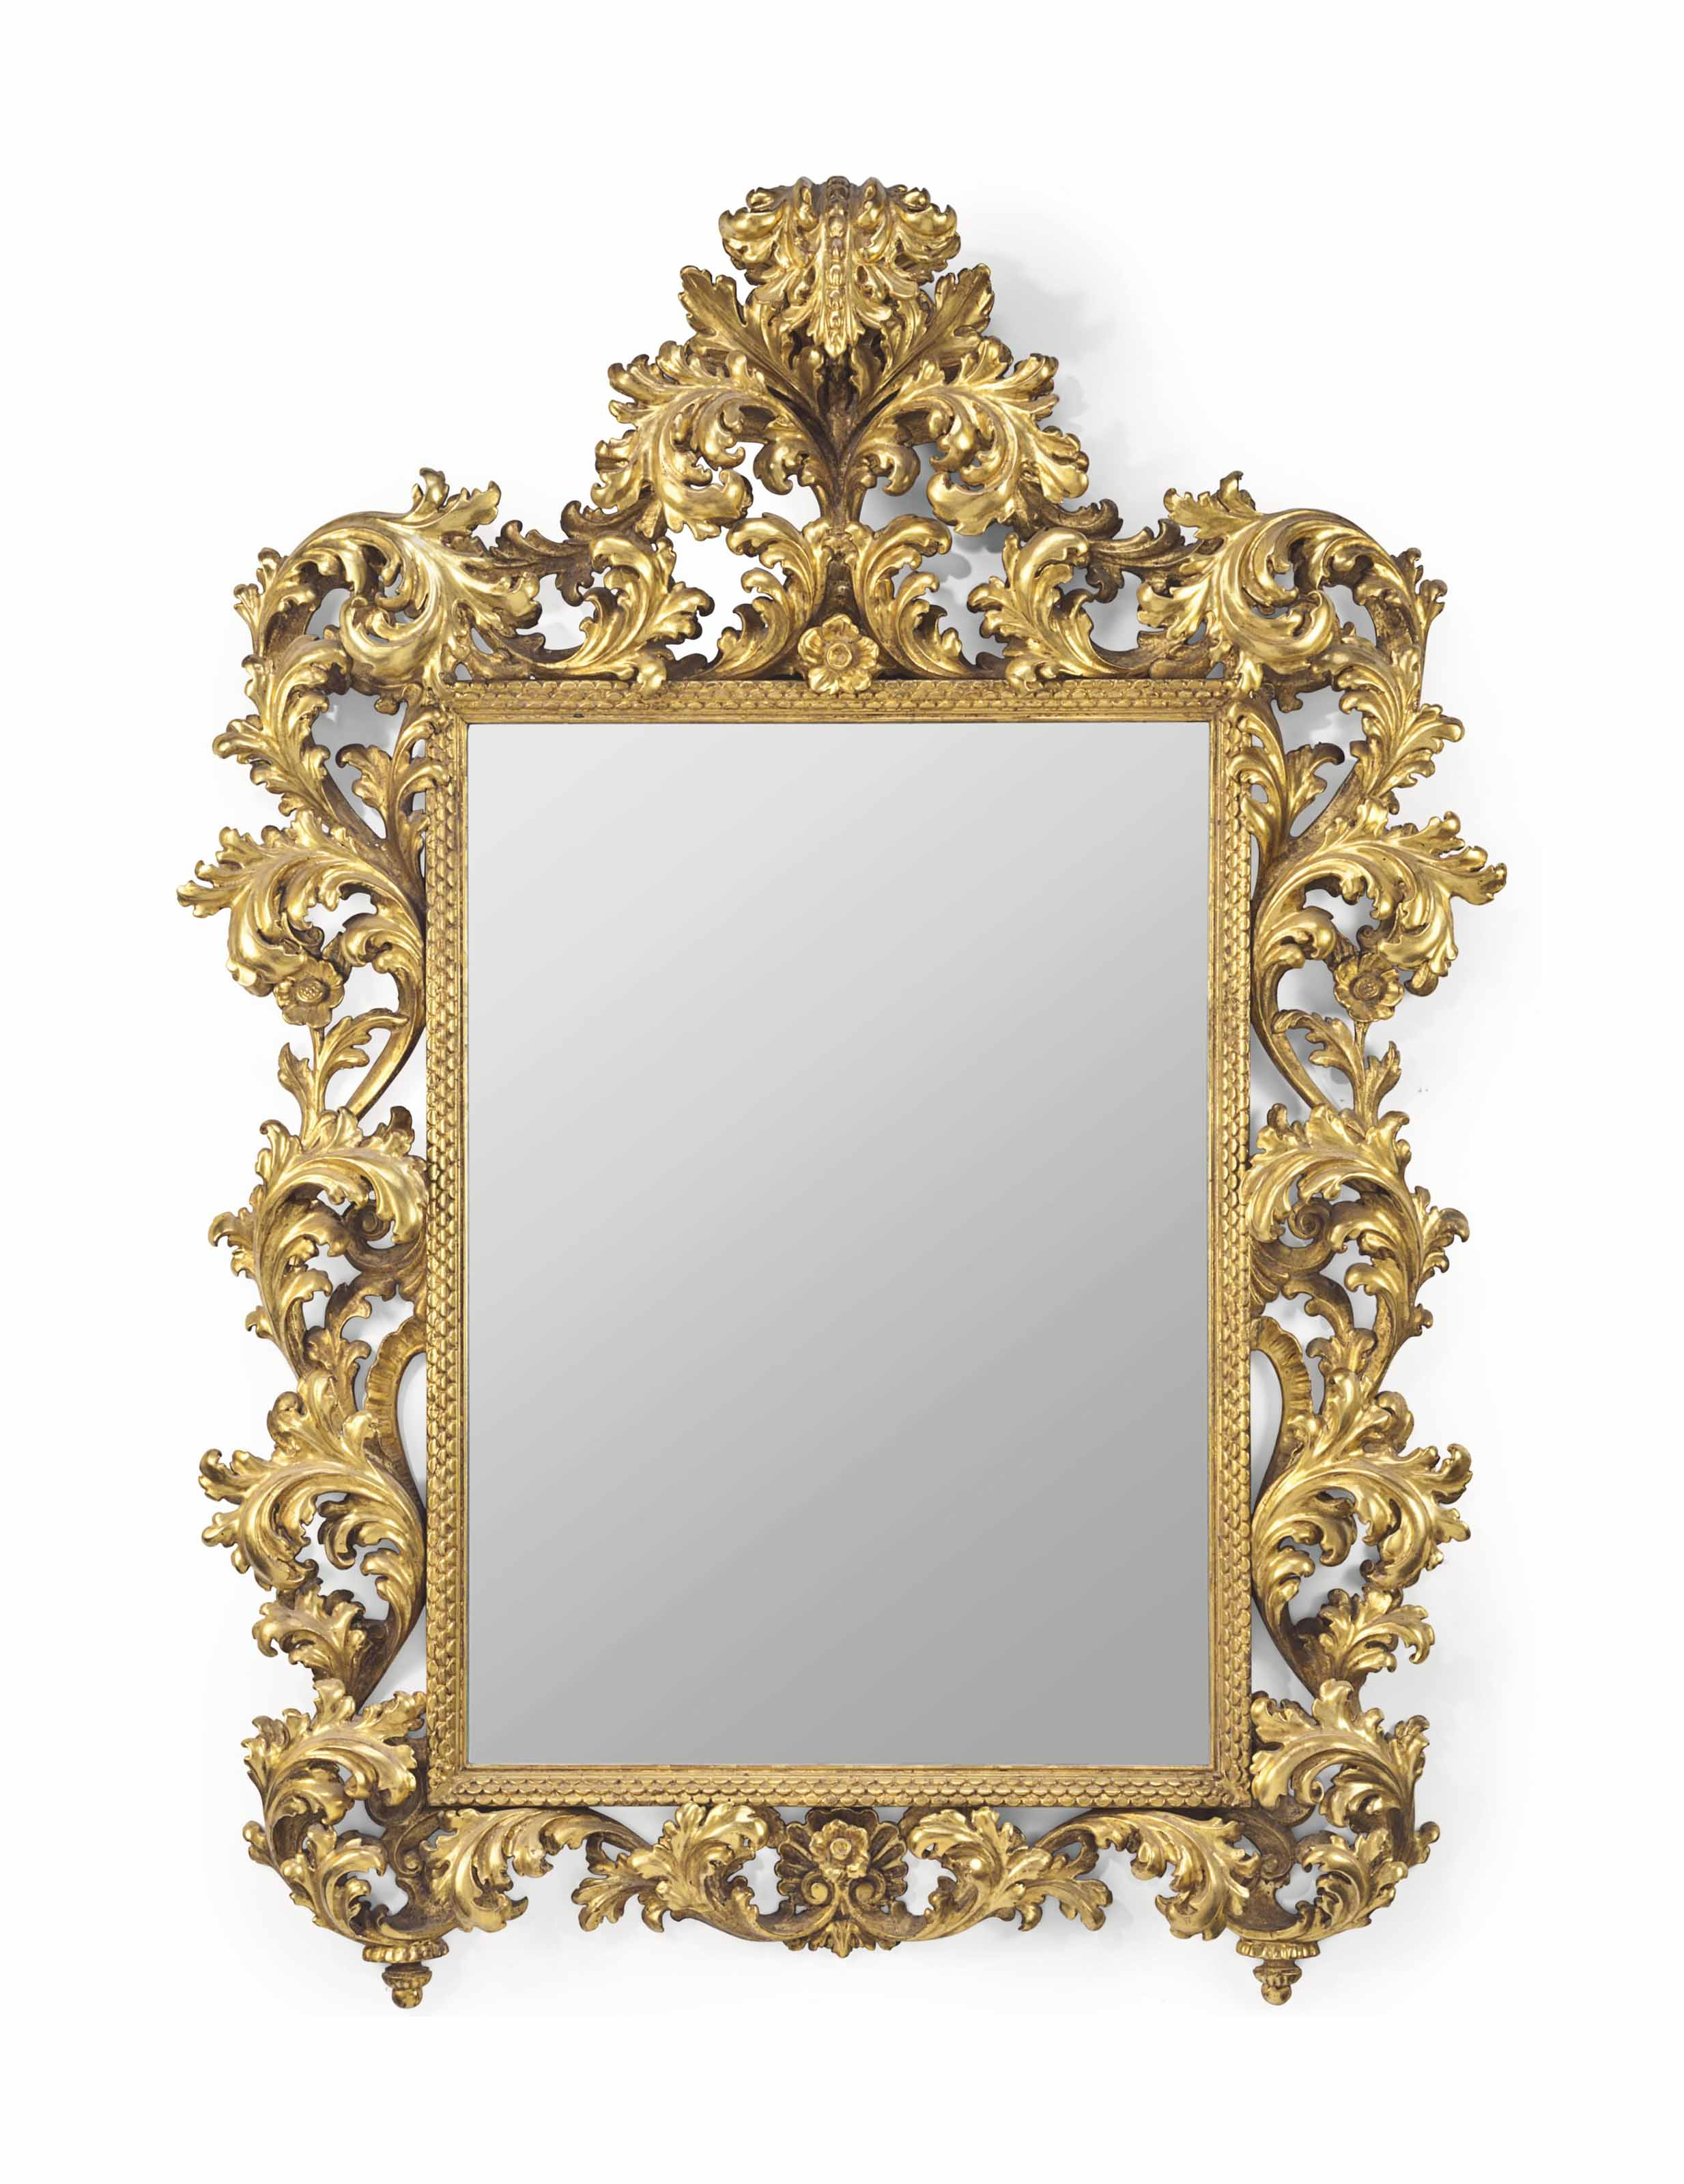 A LARGE CONTINENTAL GILTWOOD M